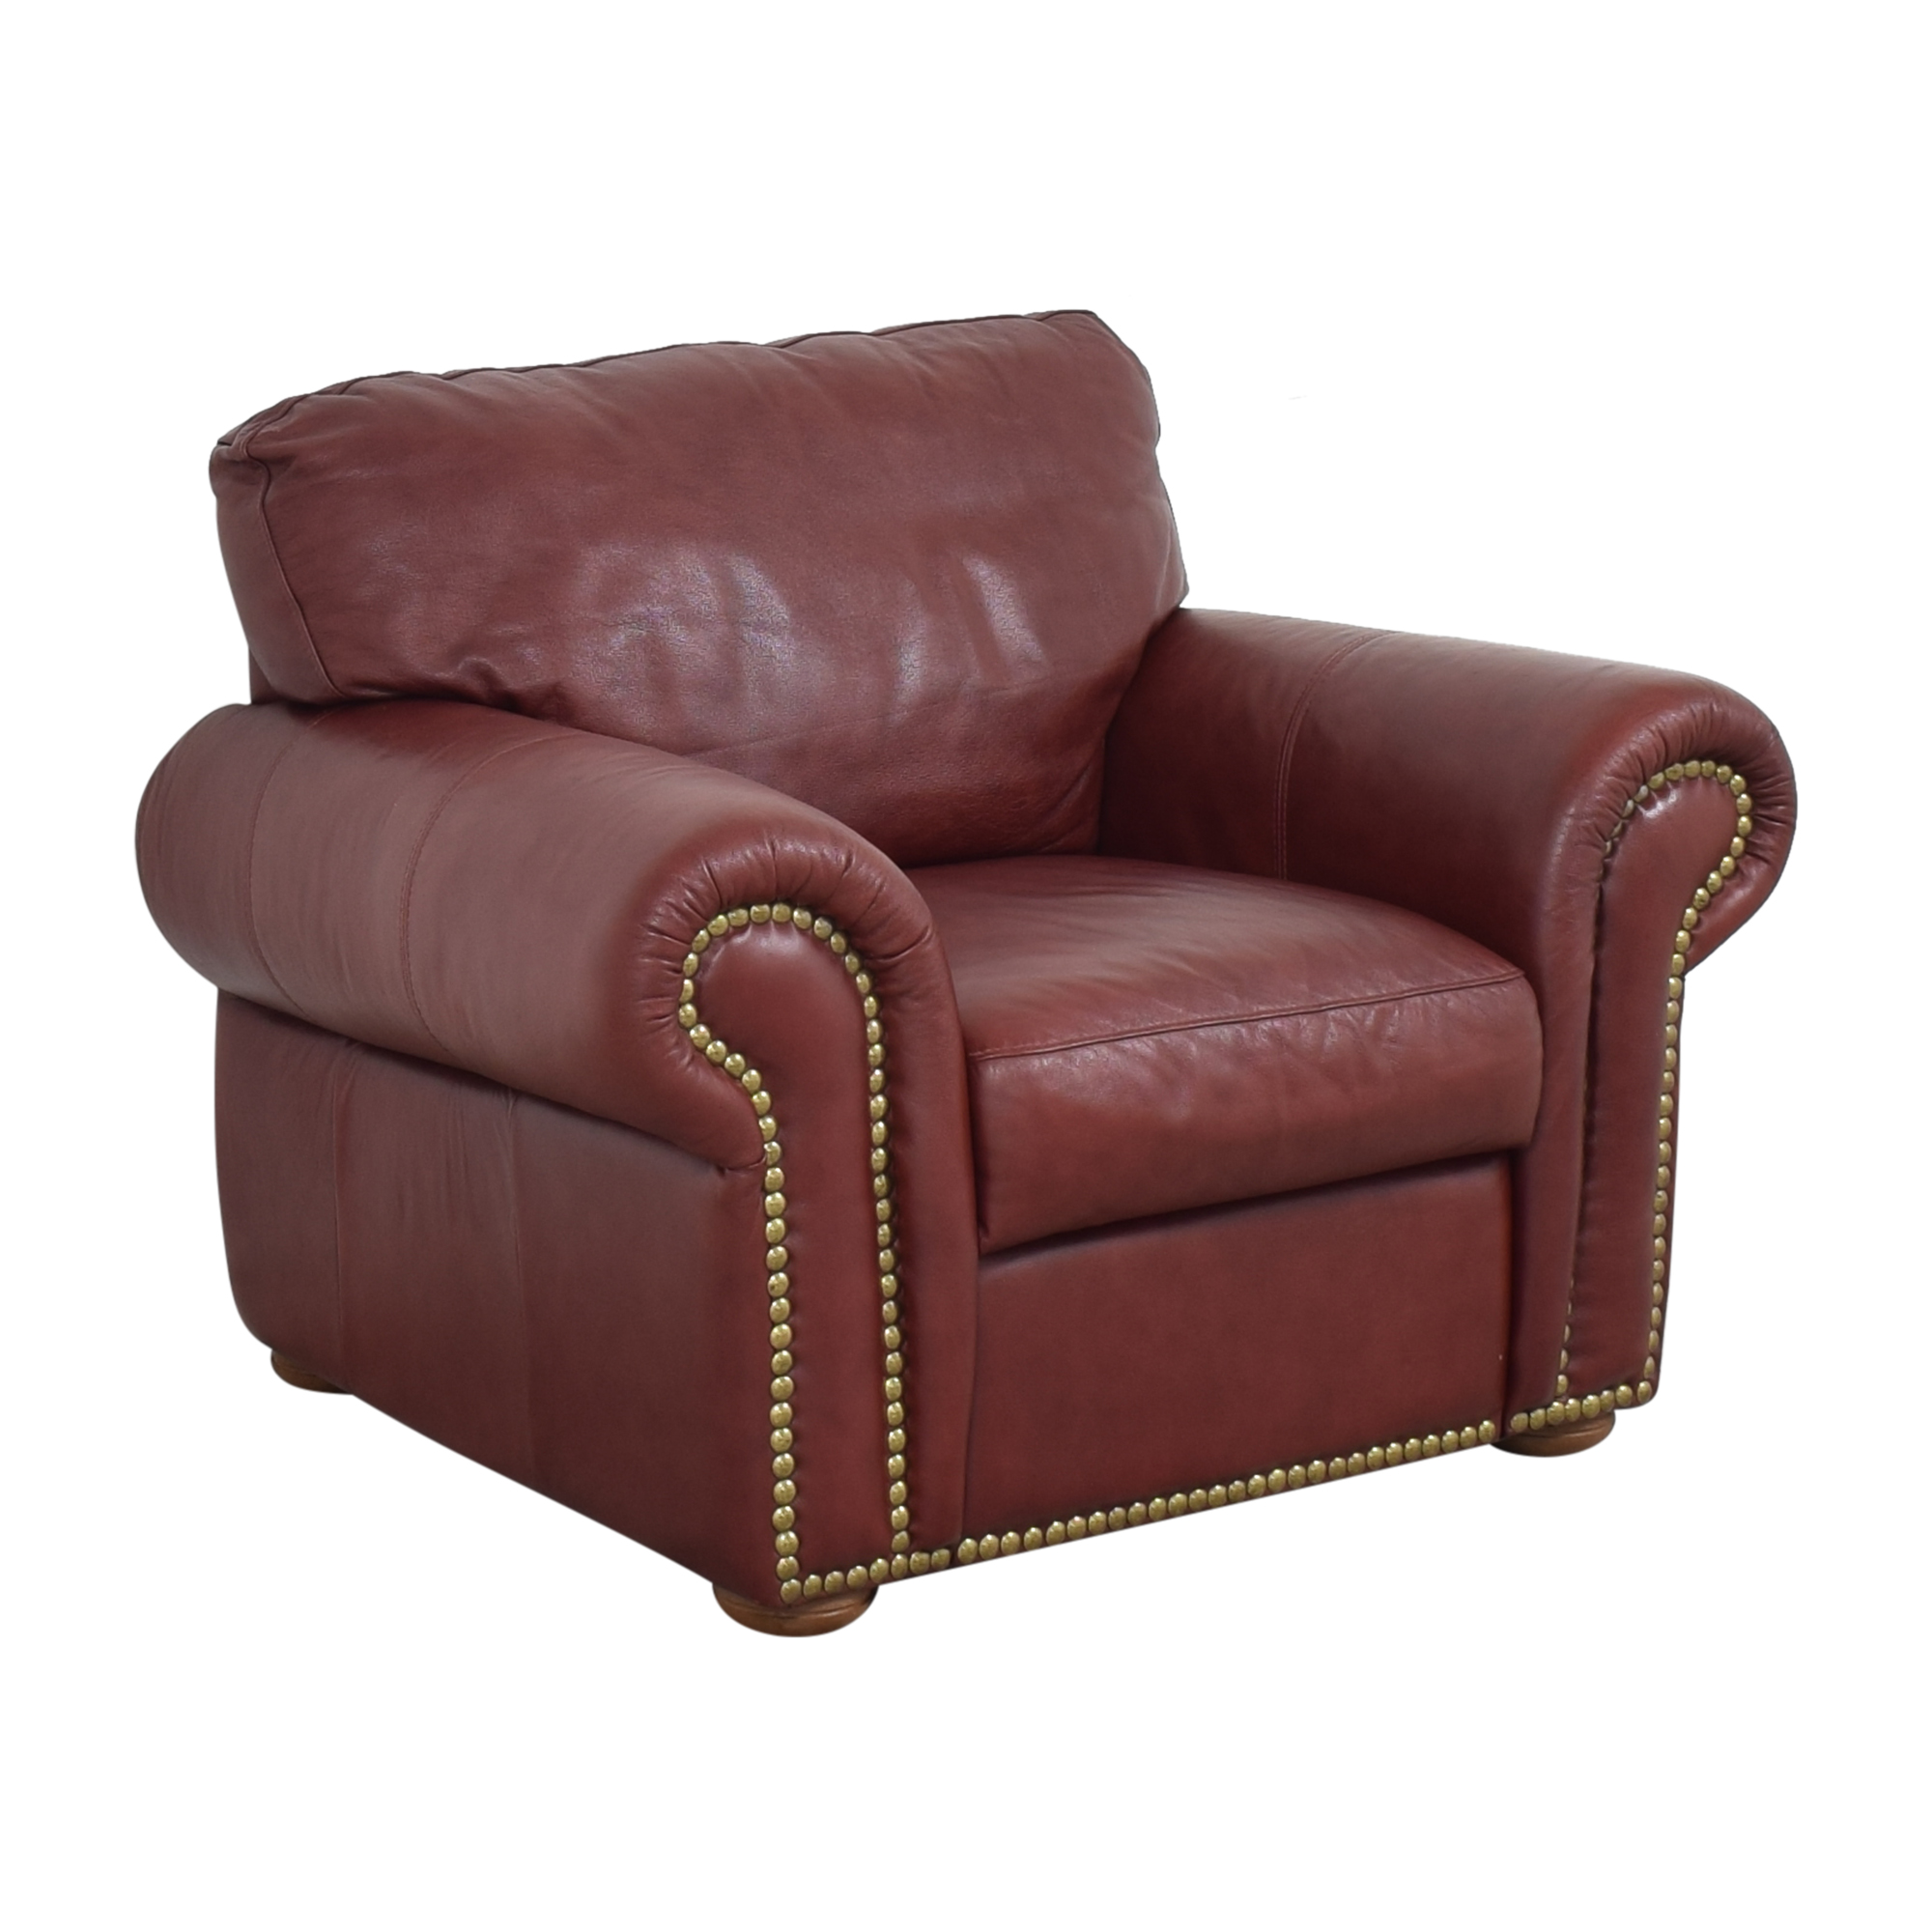 buy Macy's Macy's Nailhead Roll Arm Chair online